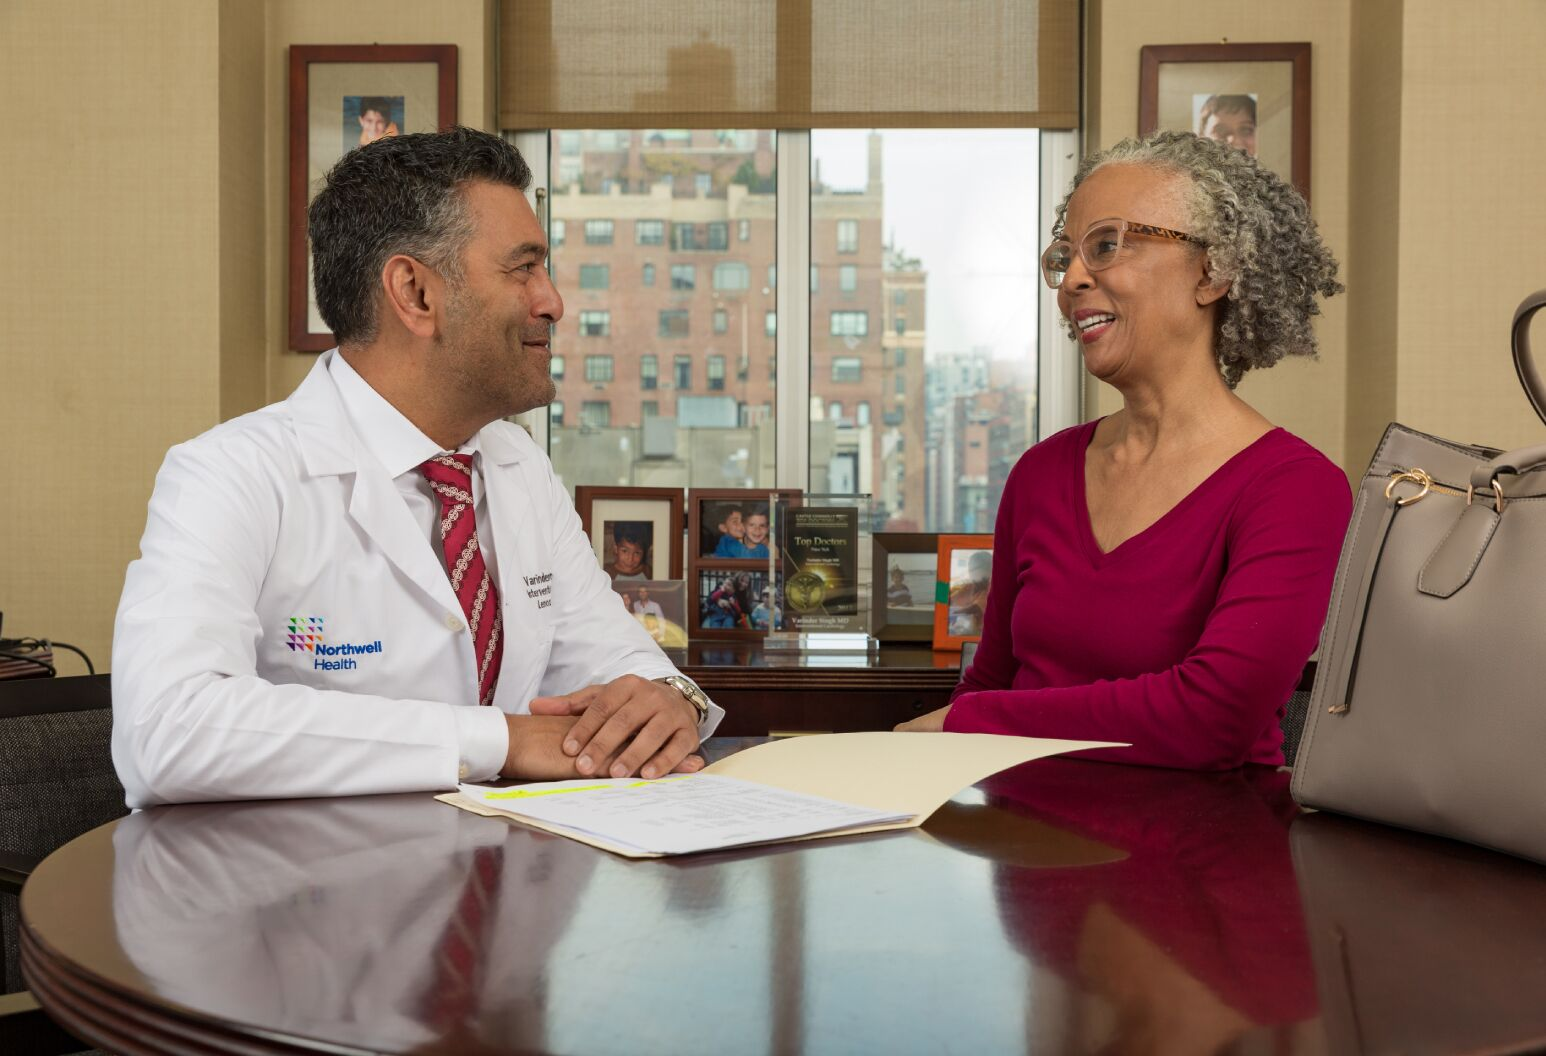 a physician and patient sitting at a table smiling at each other while going over a file on the table